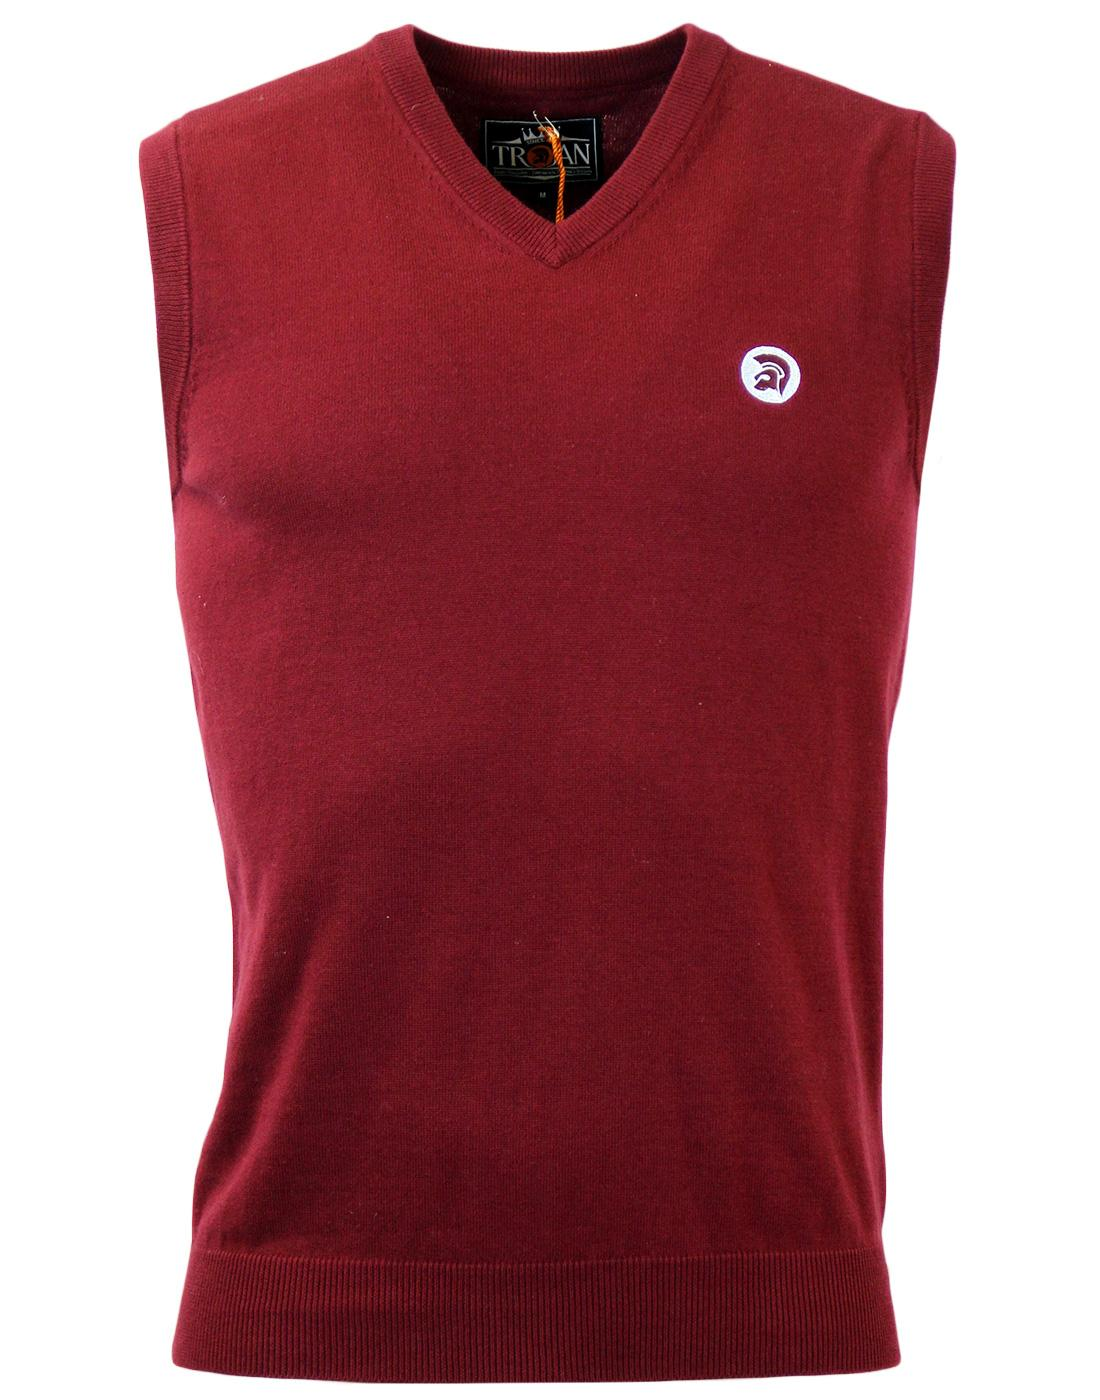 TROJAN RECORDS Retro 60's Fine Gauge Tank Top M